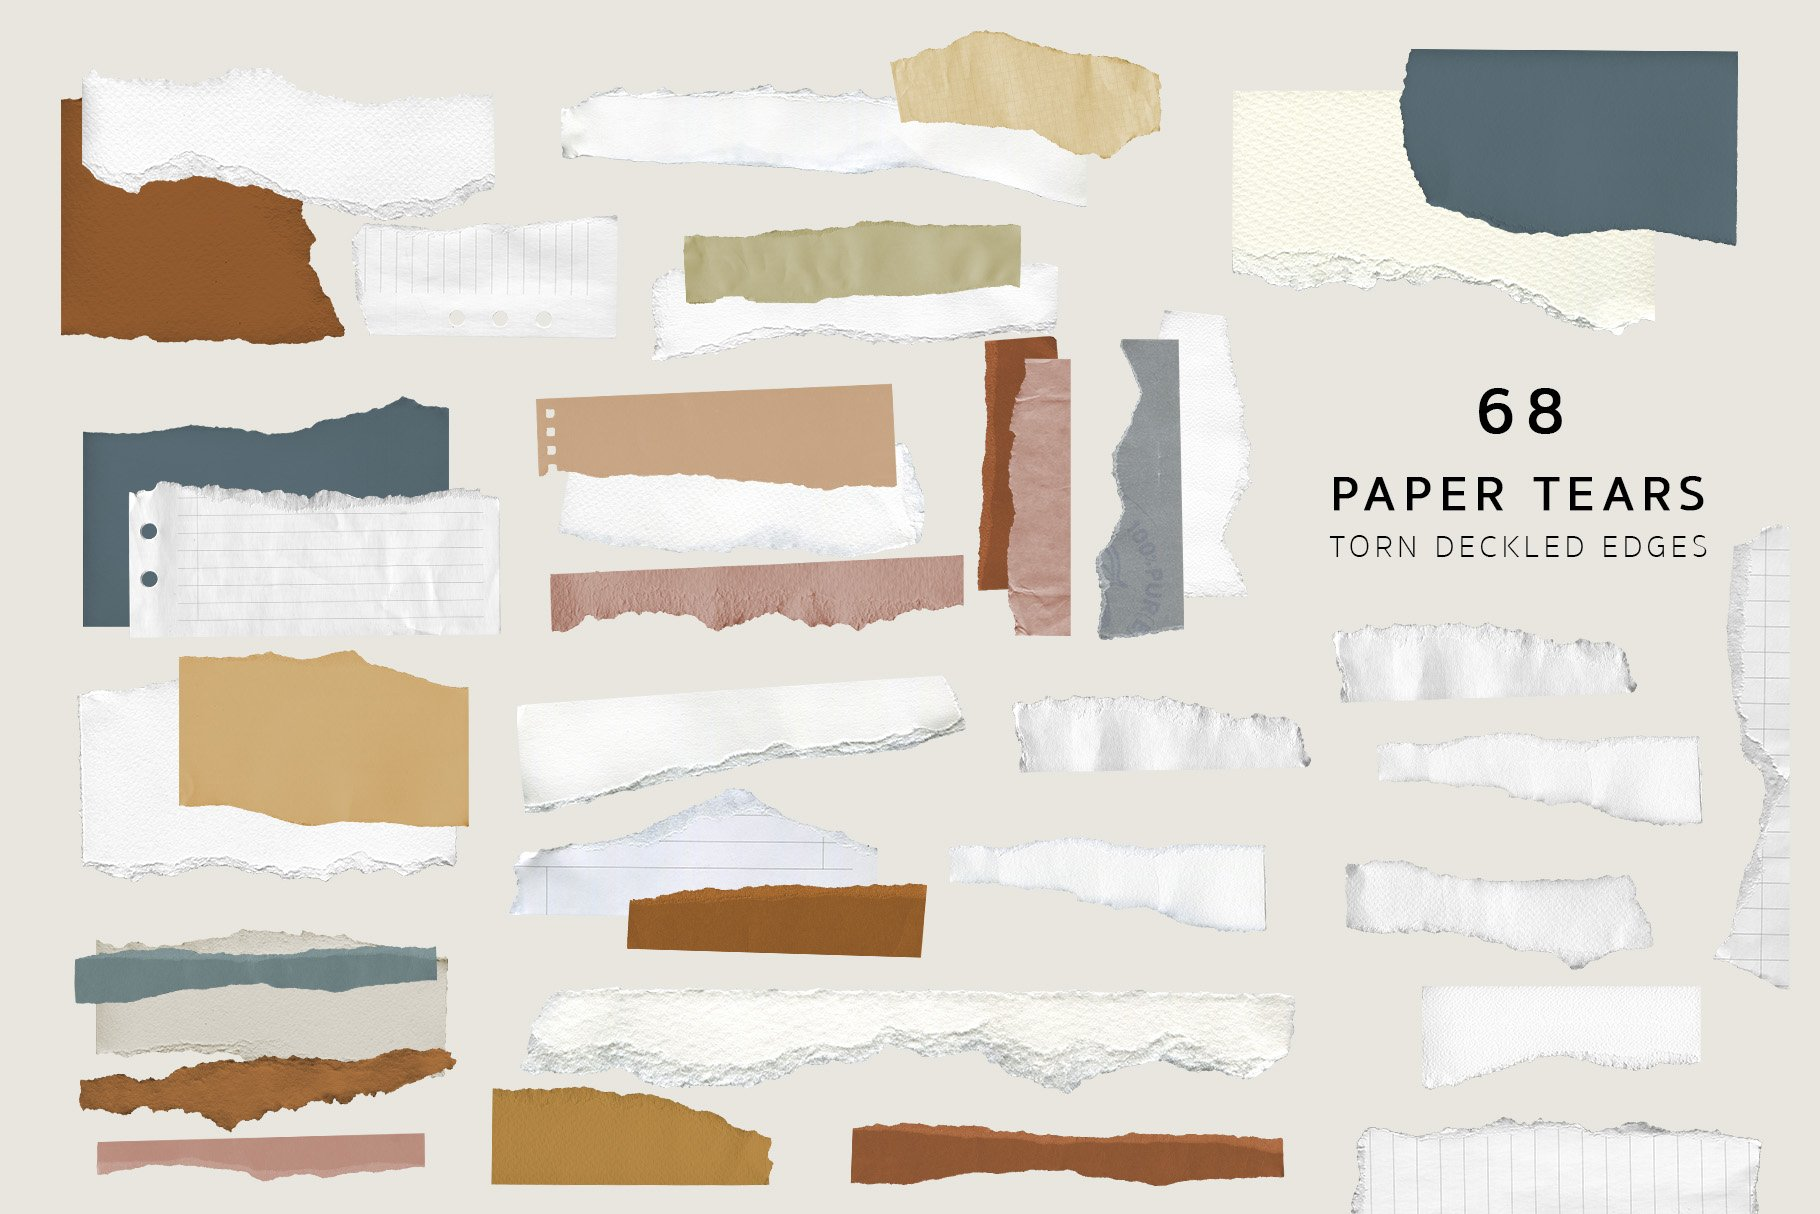 Part of the texture in the different colors. Abstract Torn Deckled Paper Edges.